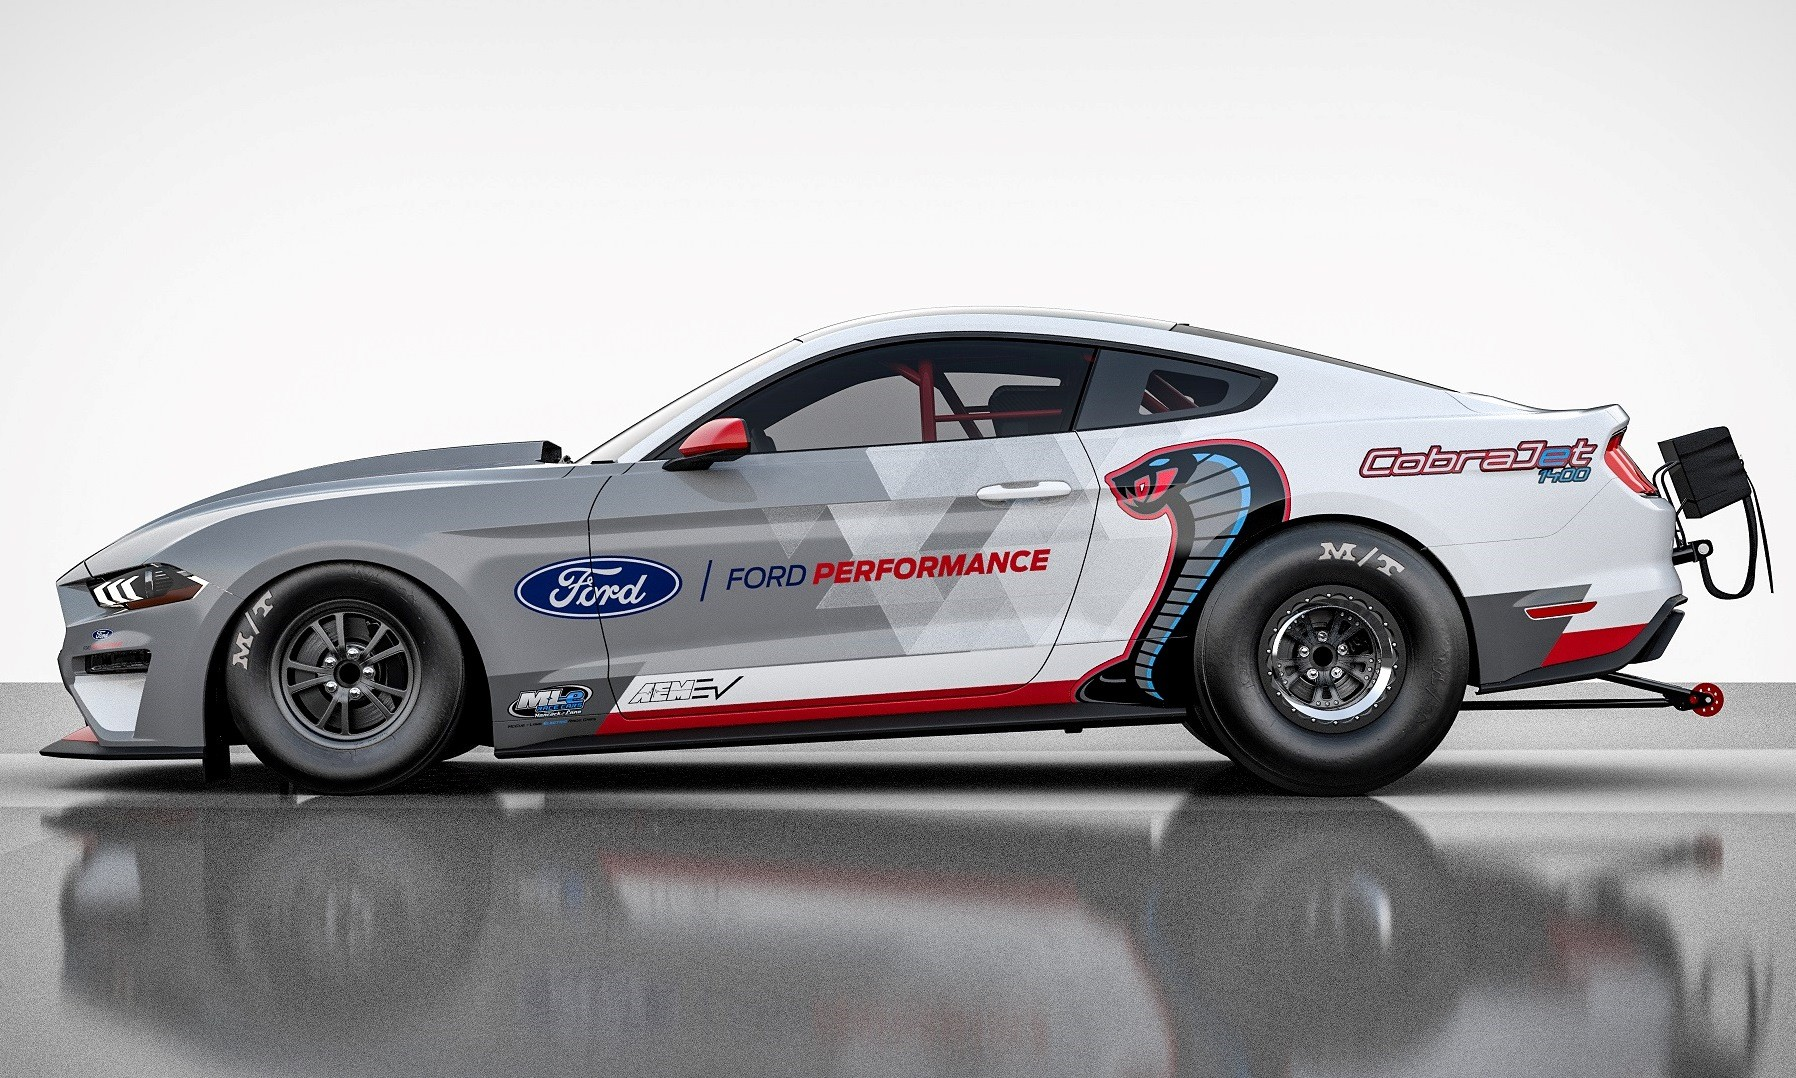 Electric Mustang Cobra Jet Dragster profile